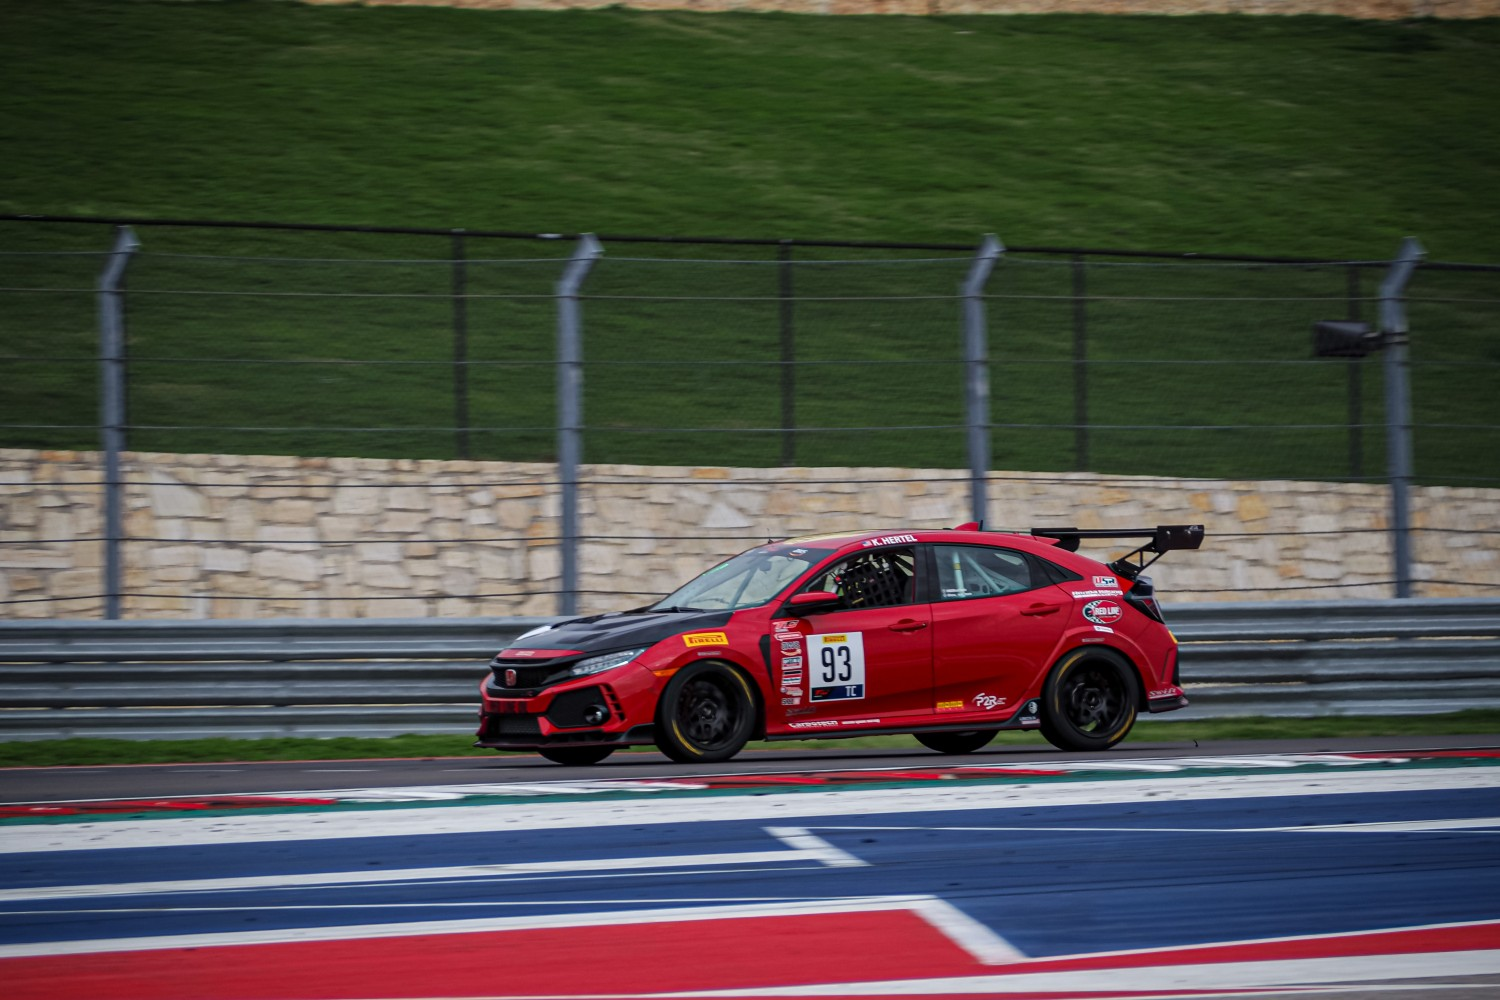 #93 TC, Team HMA, Karl Hertel, Honda Civic Type-R, 2020 SRO Motorsports Group - Circuit of the Americas, Austin TX  | SRO Motorsports Group